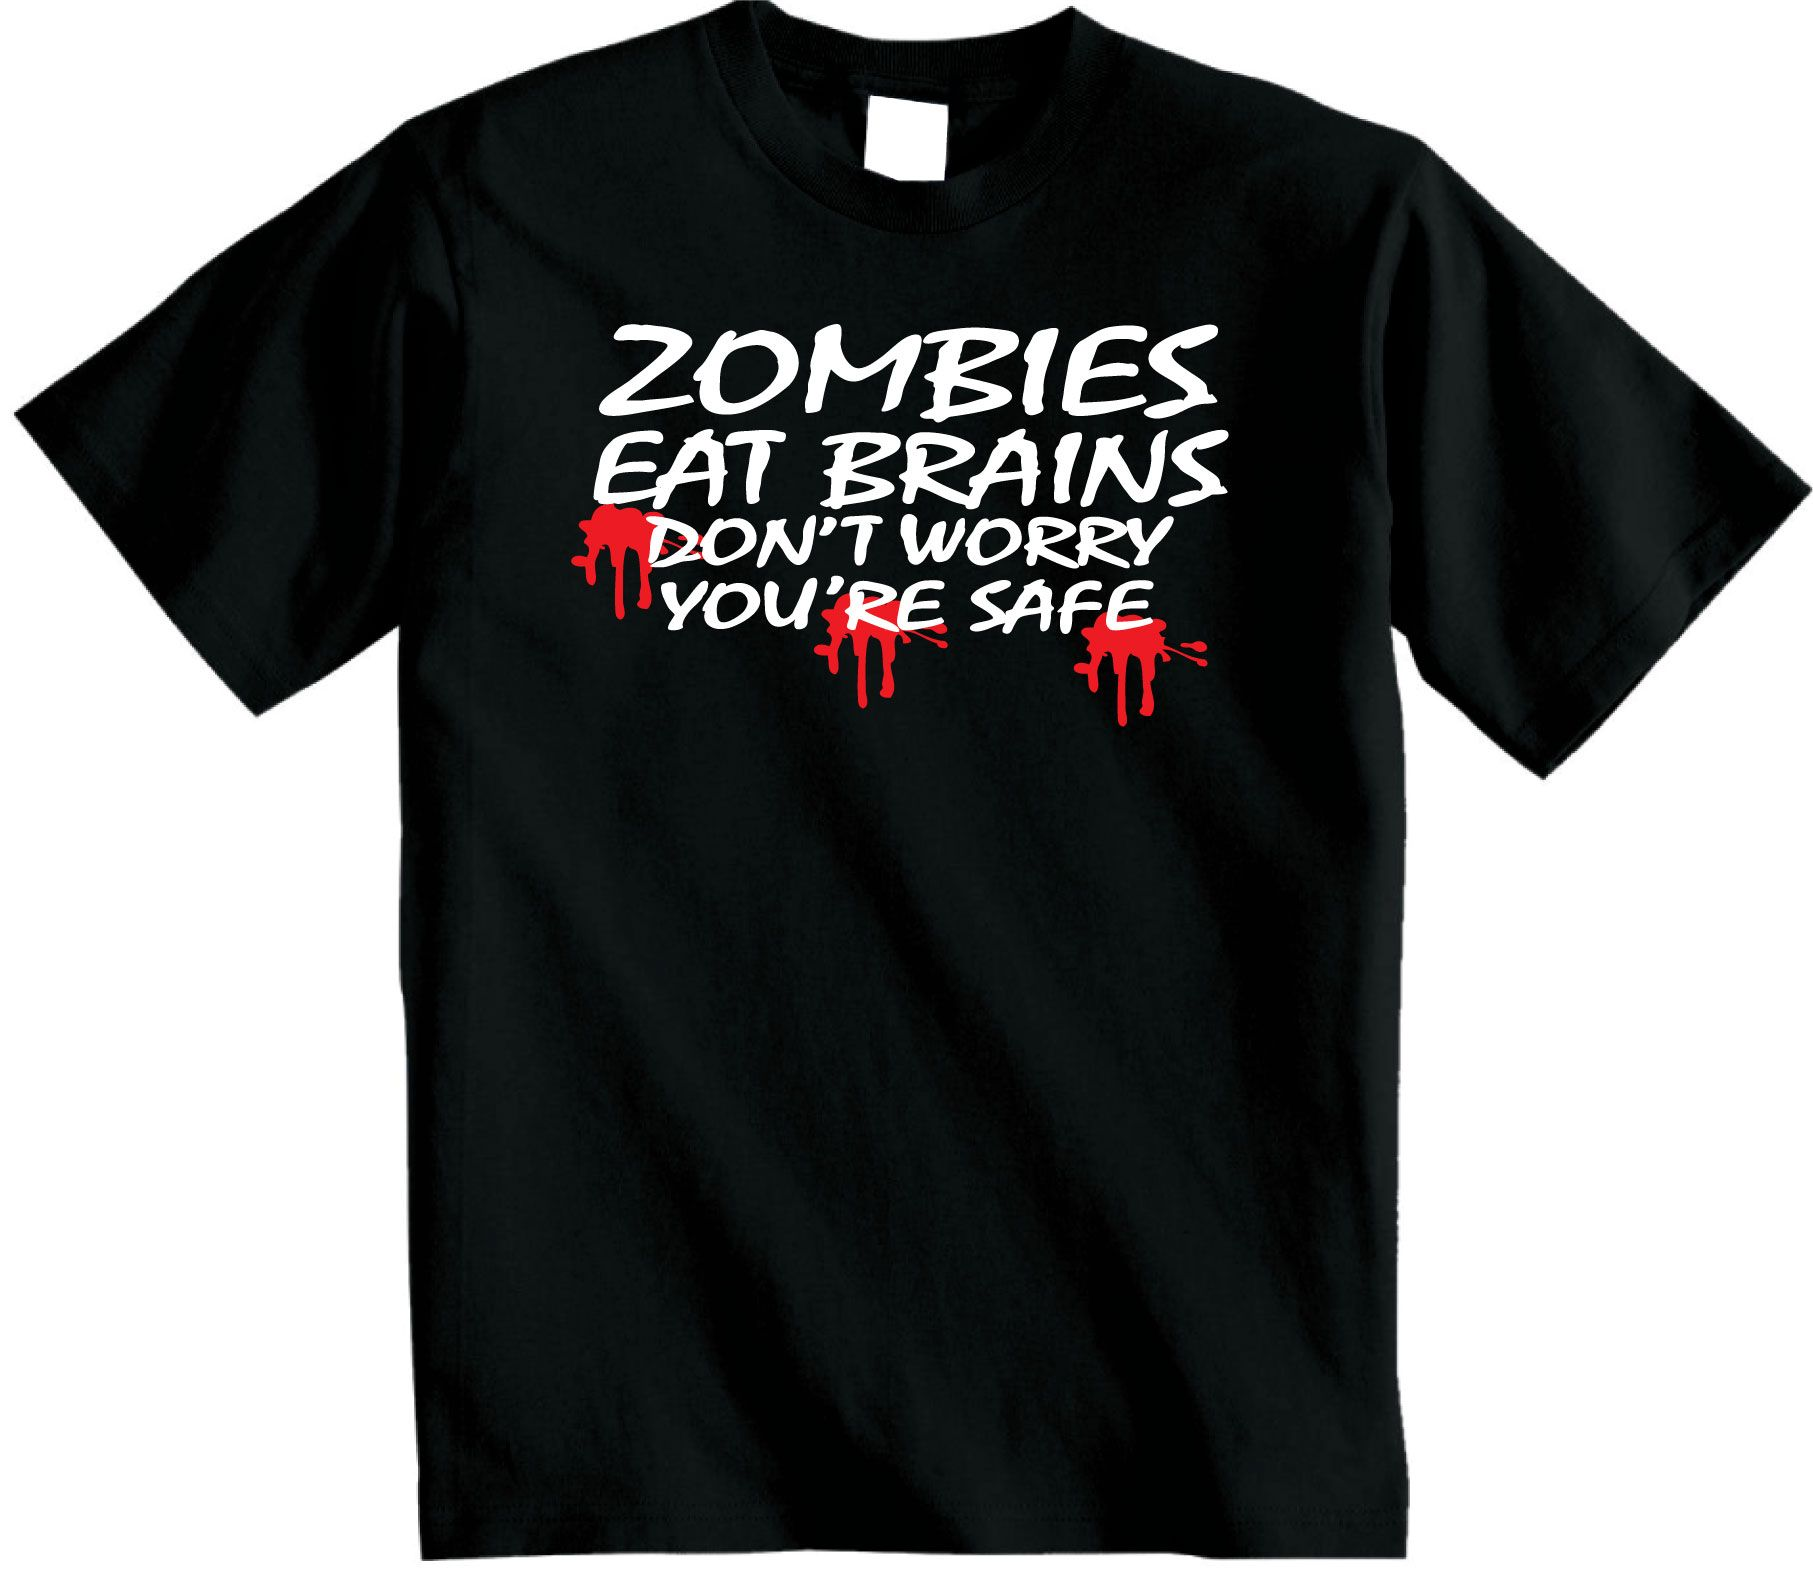 Zombies eat Brains Dont worry you're safe t shirt zombie apocalypse tshirt FREE UK DELIVERY